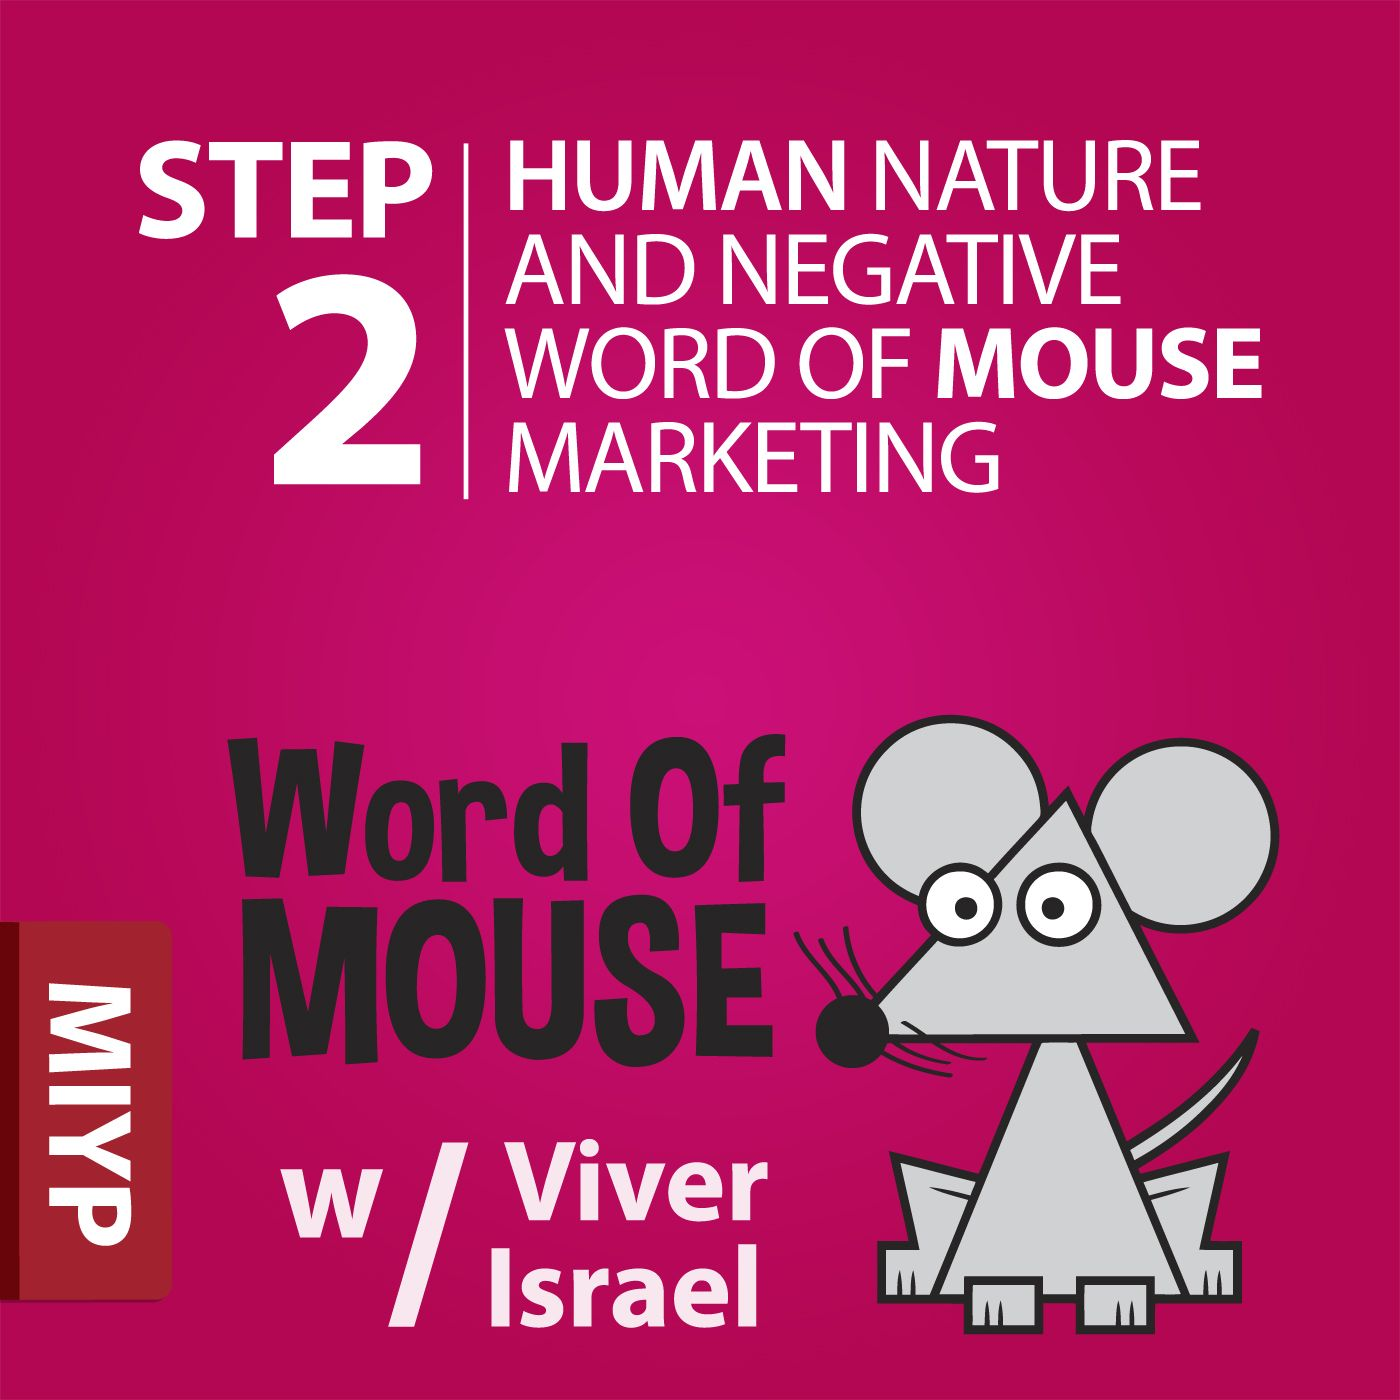 The Word of MOUSE Blog Show podcast, Step 2 of the 12 Steps to Effective Online Marketing - Human Nature and Negative Word of MOUSE Marketing.  It's a fact of life and business that people more readily share negative experiences than positive ones …  Listen and learn more at http://miypmarketing.com/step-2-human-nature-and-negative-word-of-mouse-marketing/ .  Downloadable Show Notes are also available there.